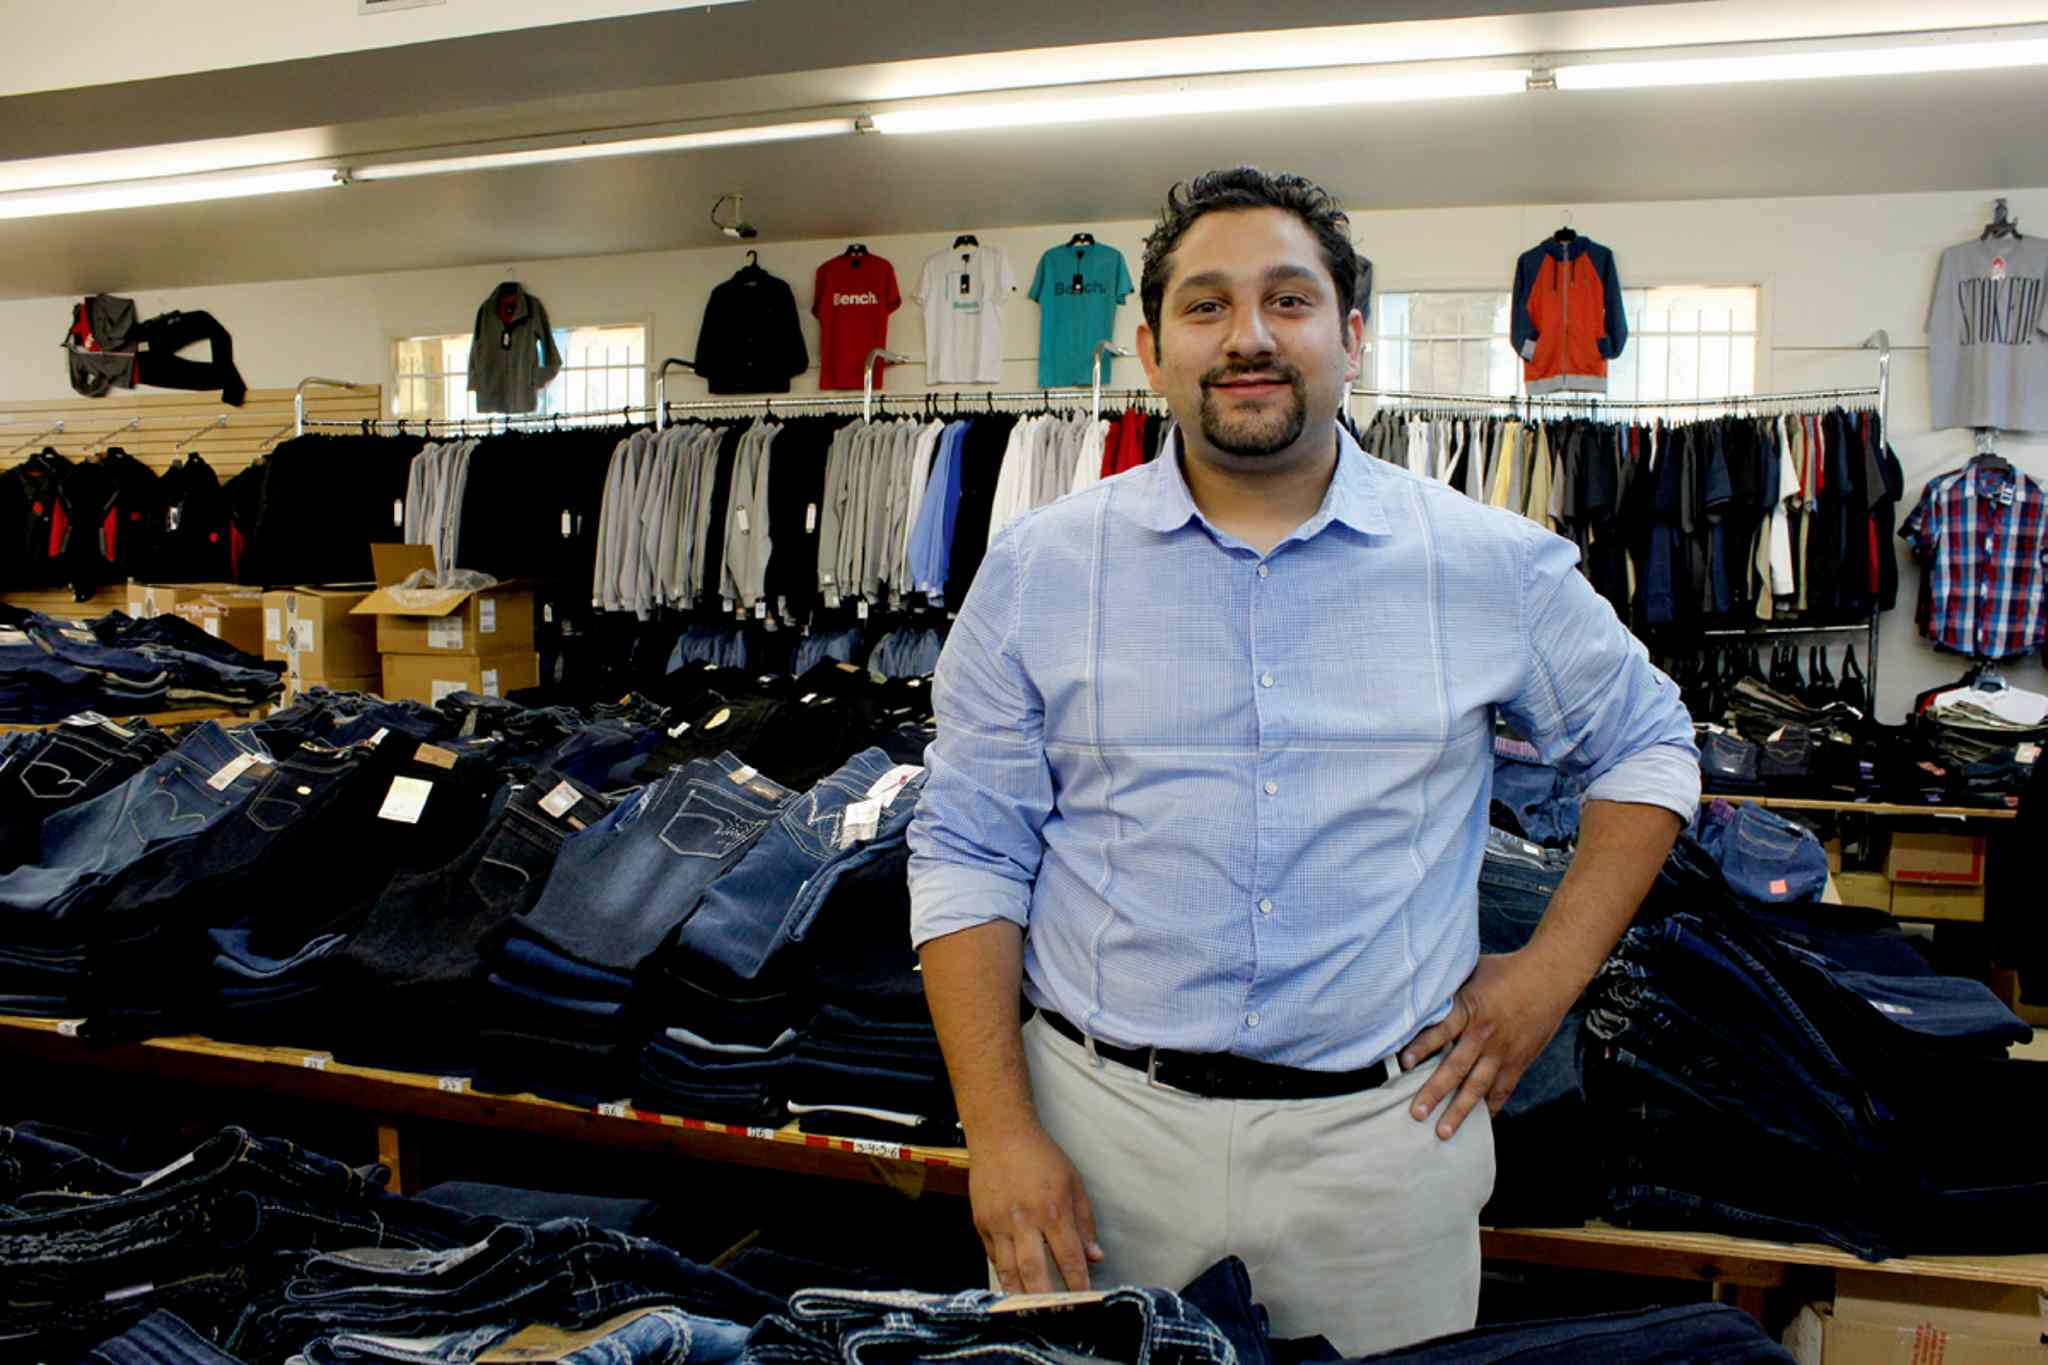 Mohamed El Tassi, owner of Sargent Blue Jeans, provided the Downtown Winnipeg BIZ with a 2008 Dodge Caliber for its Community Homeless Assistance Team to bring clients to appointments.